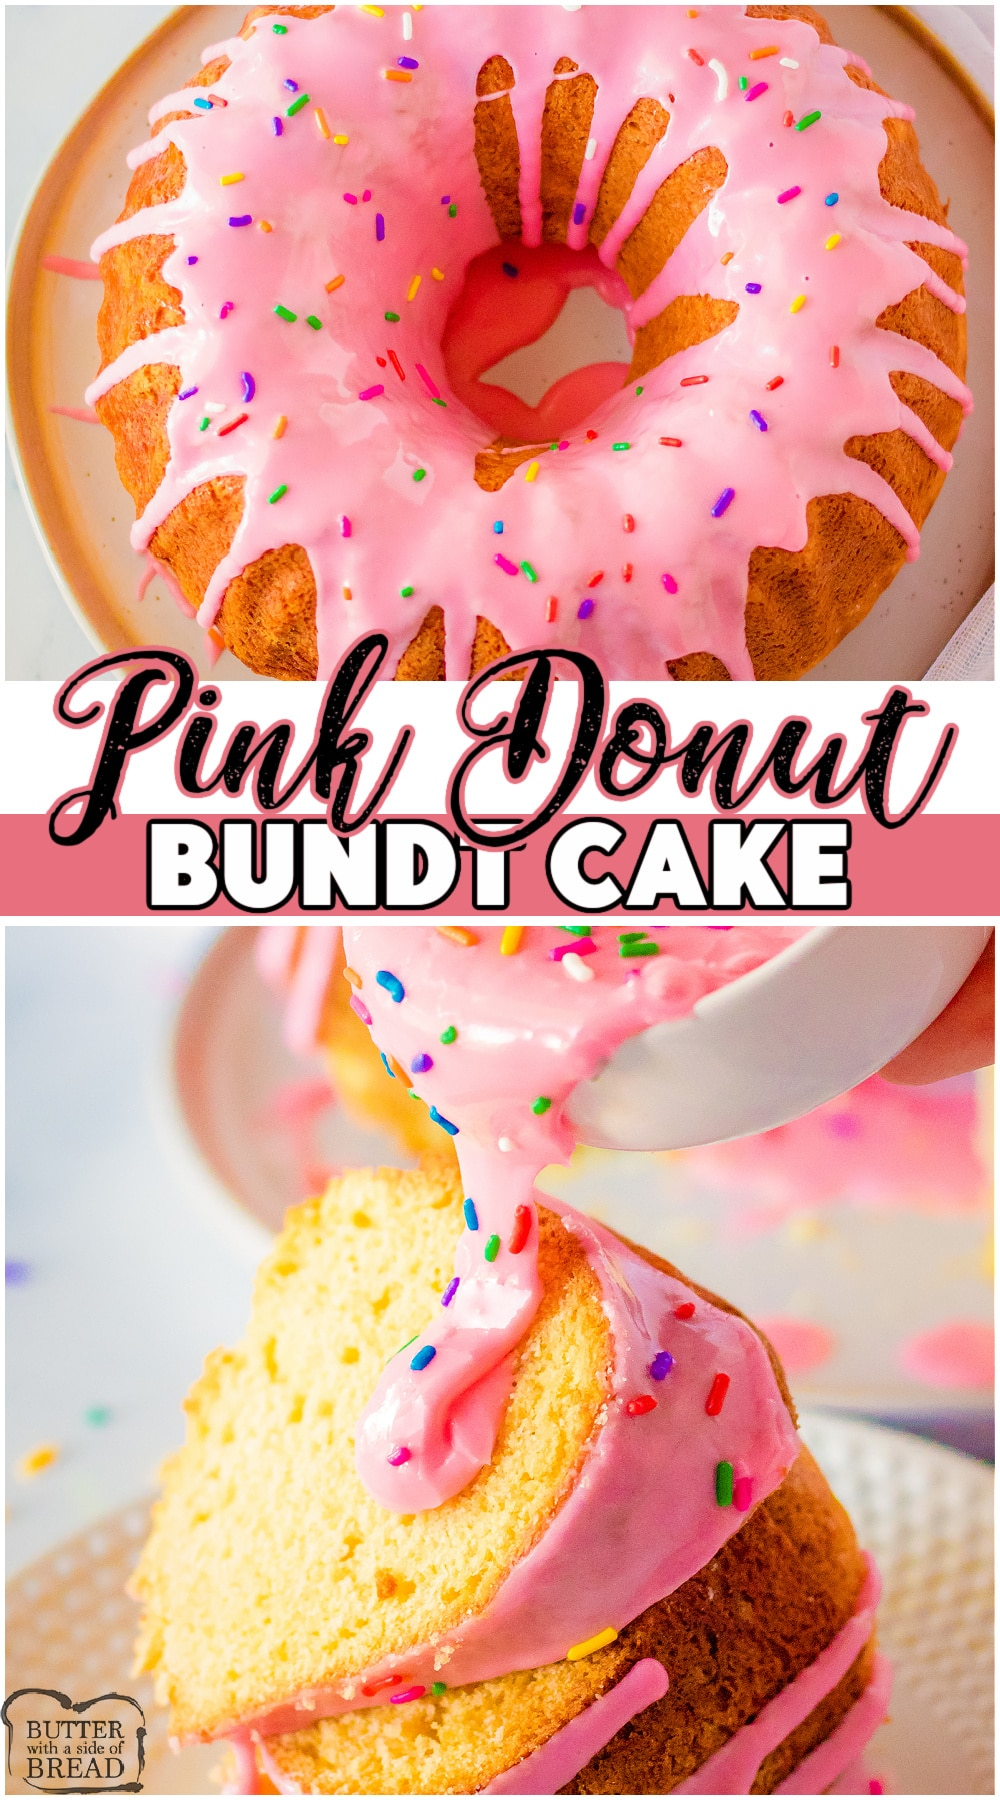 Pink Donut Bundt Cake with sprinkles looks like a frosted donut! Simple vanilla bundt cake recipe with a lovely pink icing that helps give the cake that awesome donut look. #cake #donut #bundtcake #baking #dessert #pink #easyrecipe from BUTTER WITH A SIDE OF BREAD